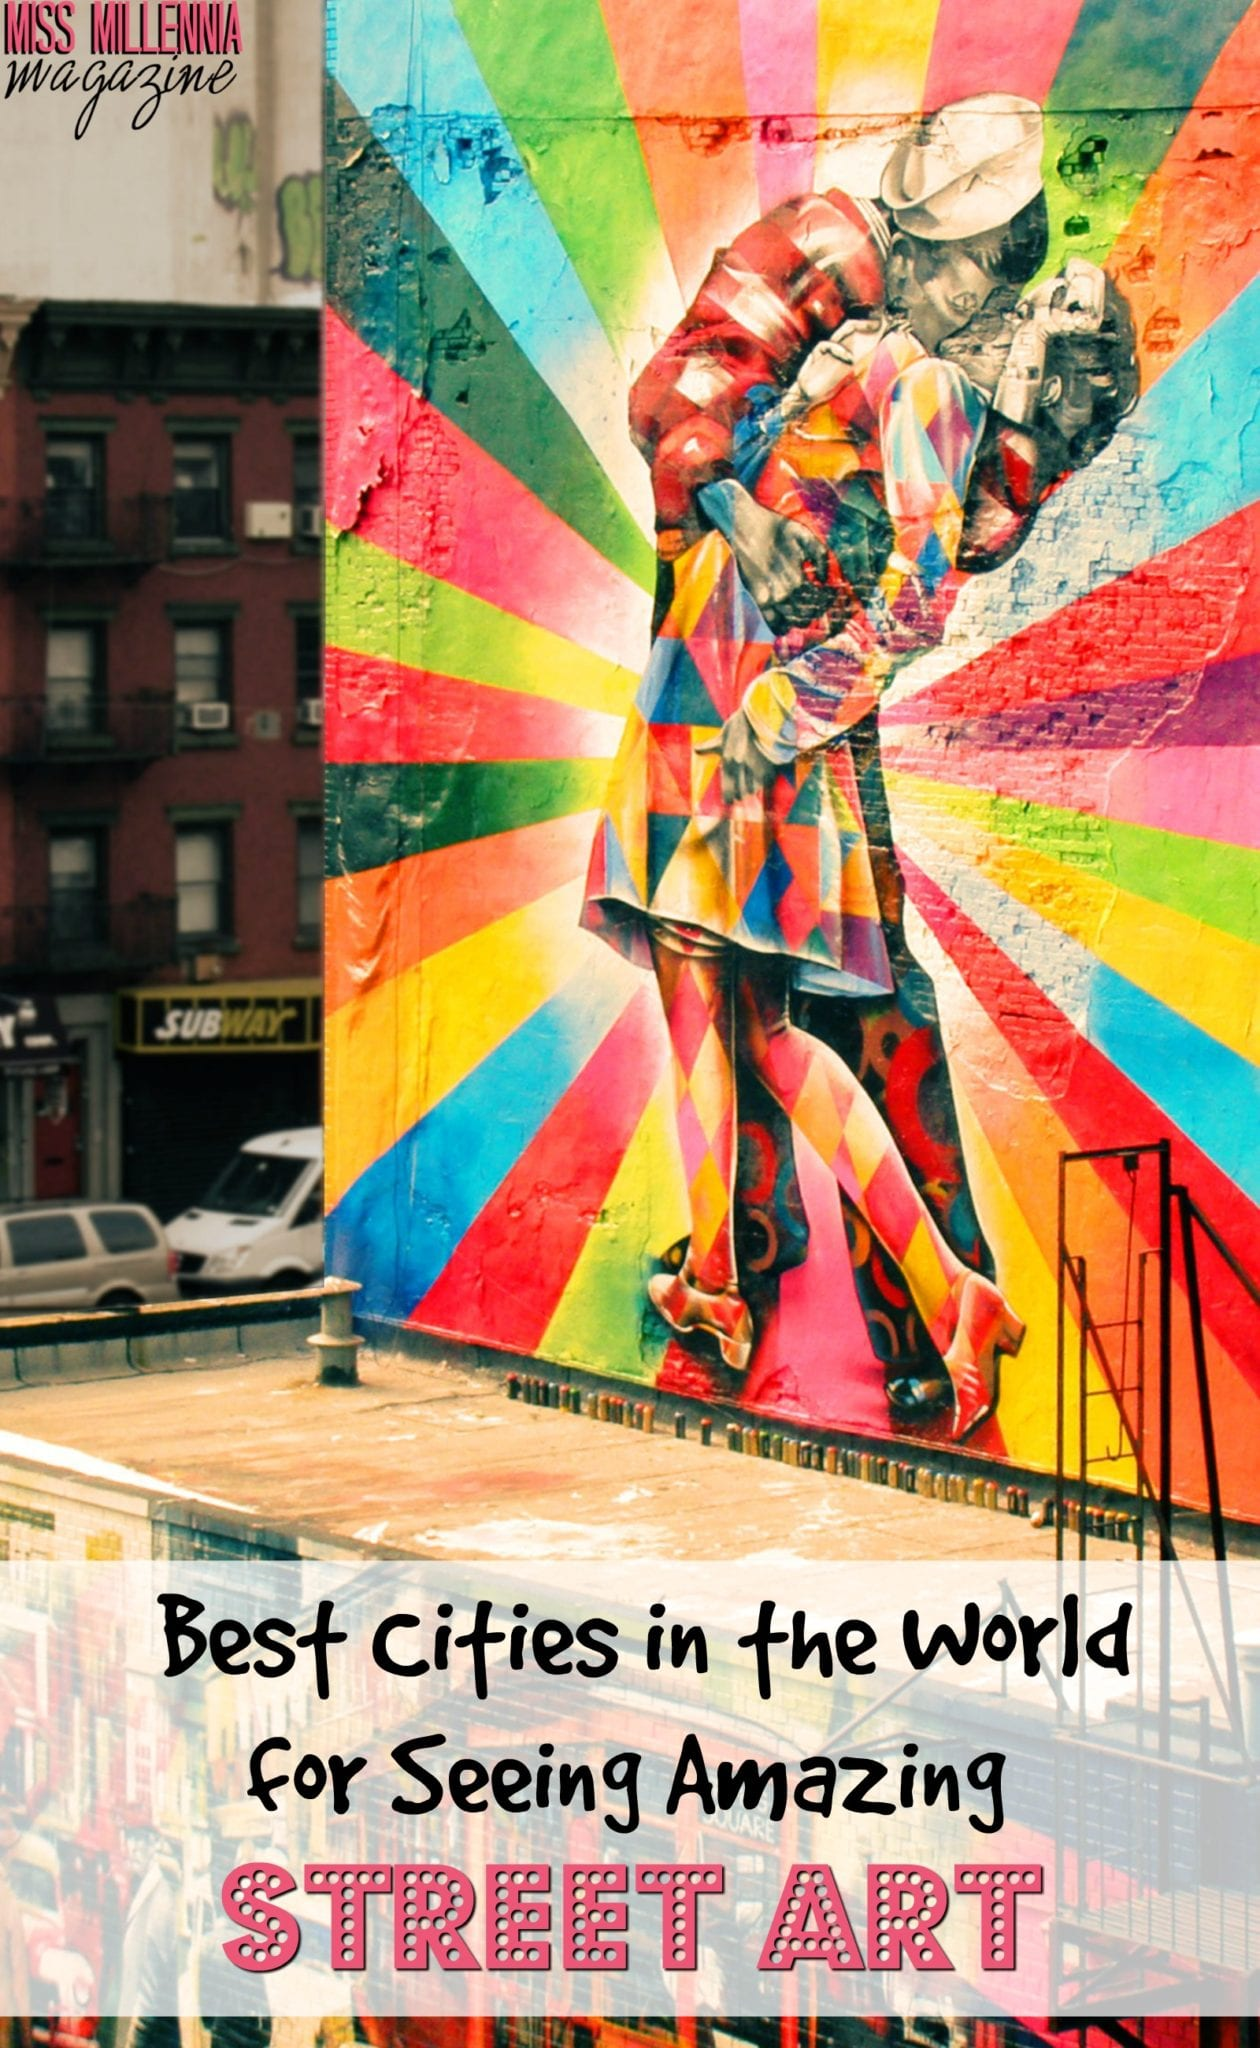 the-best-cities-in-the-world-for-seeing-amazing-street-art